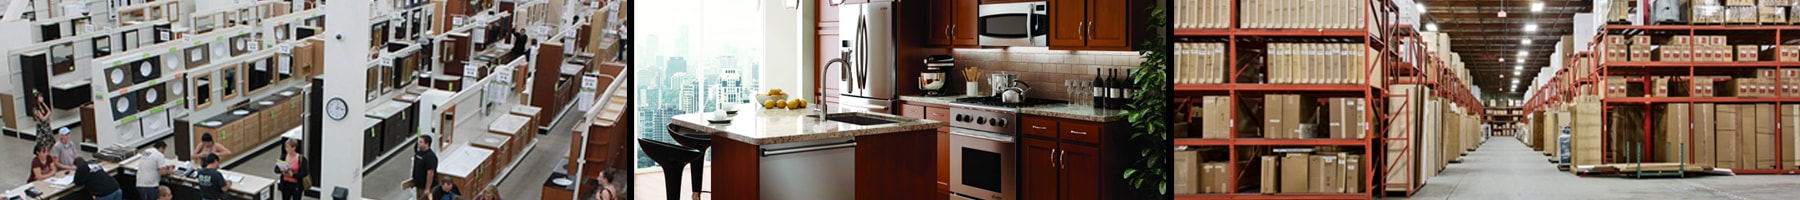 Bathroom Cabinets Ventura County builders surplus | wholesale kitchen & bathroom cabinets